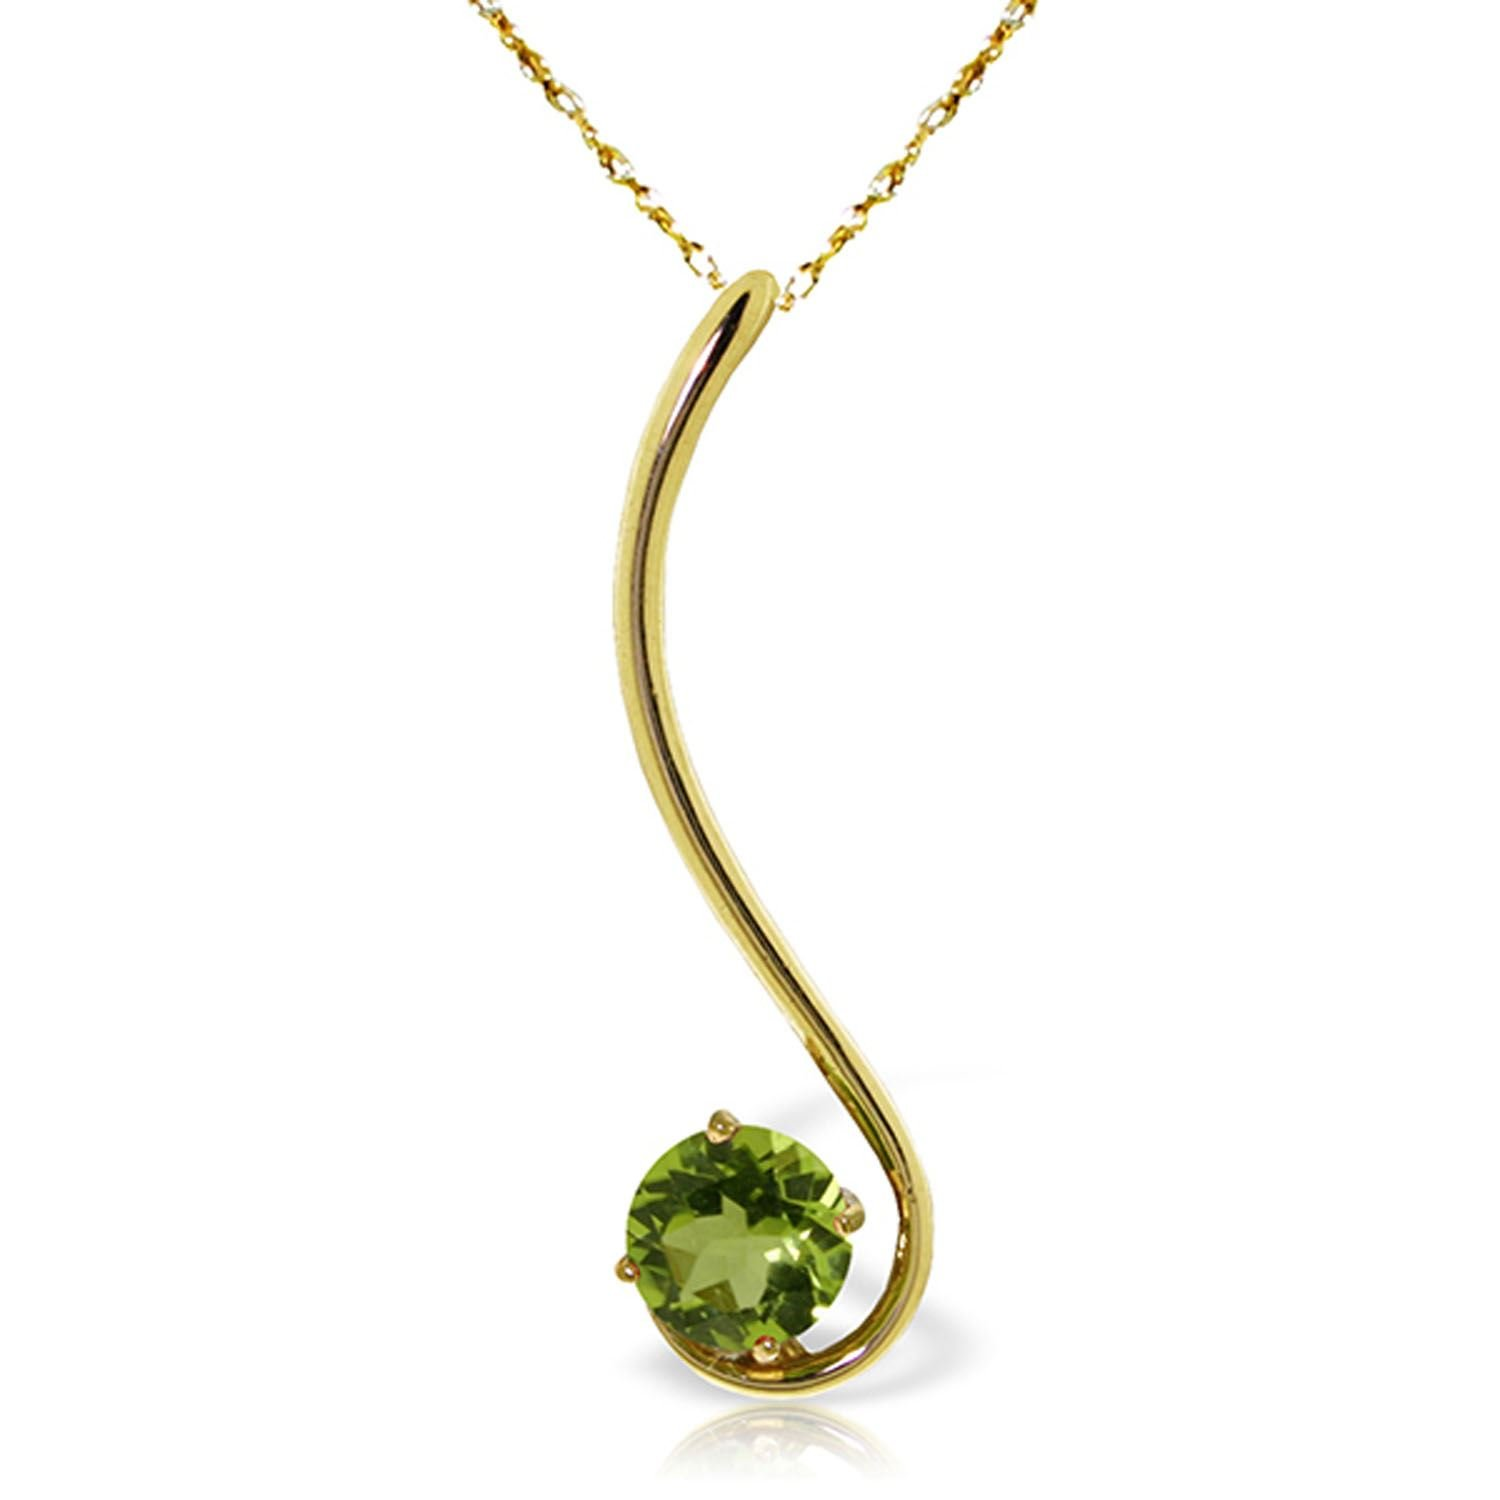 ALARRI 0.55 Carat 14K Solid Gold Fancy And Imagination Peridot Necklace with 22 Inch Chain Length